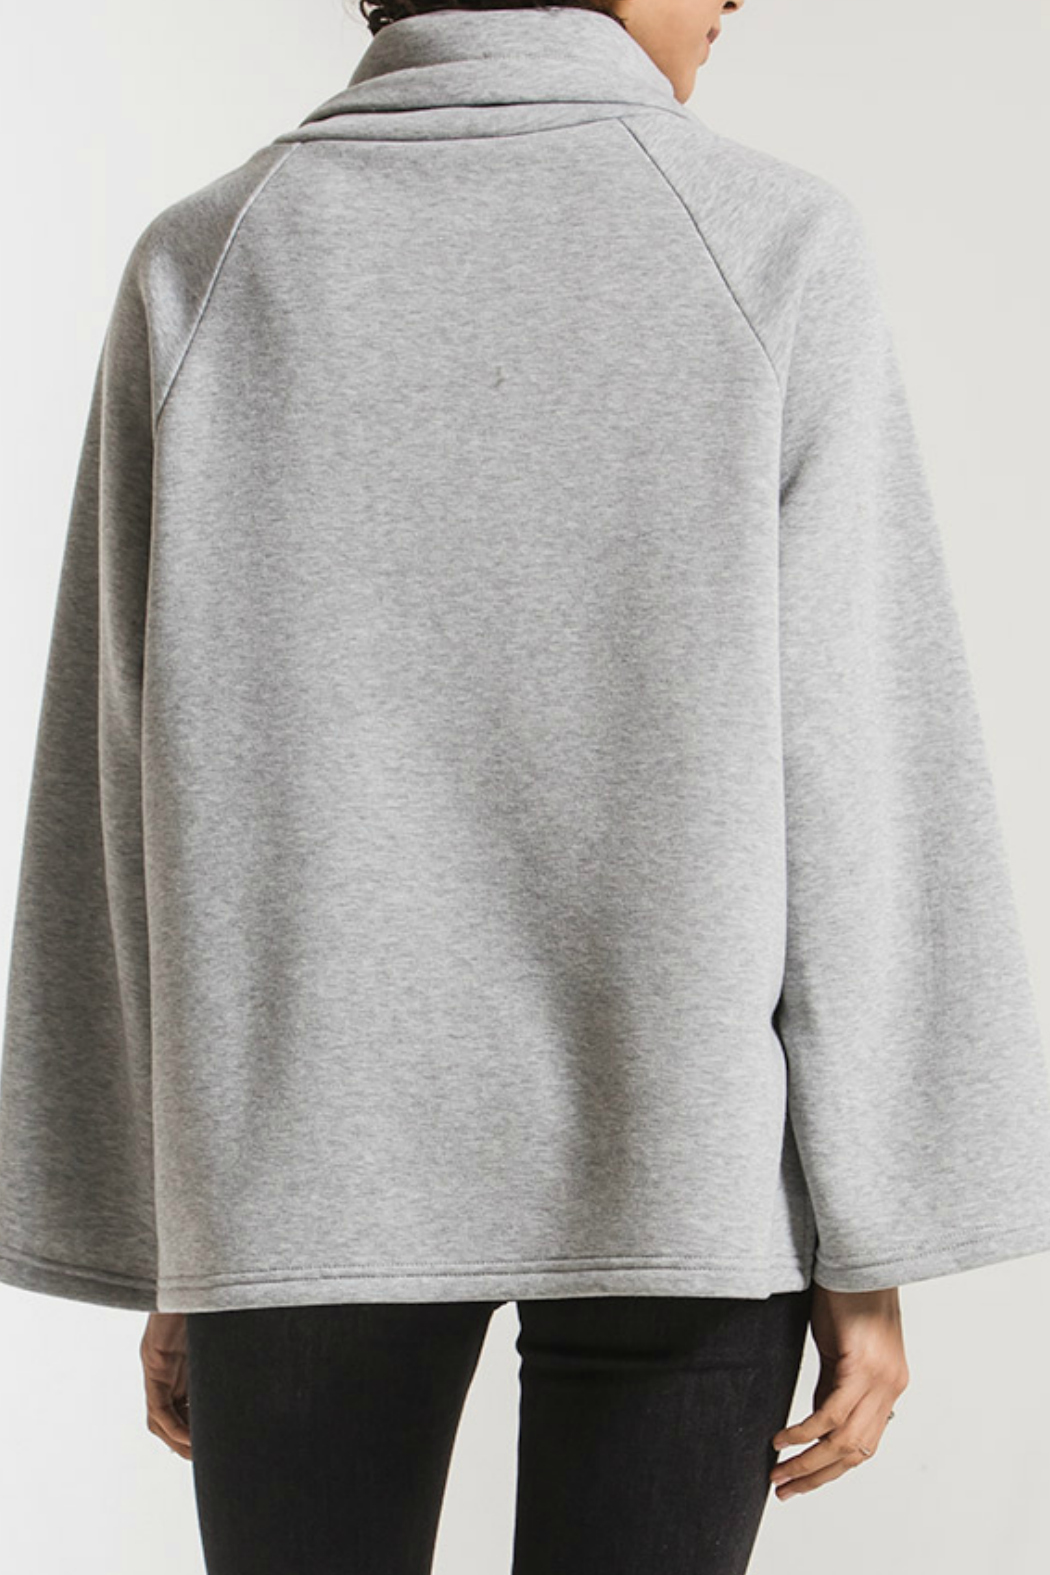 z supply Jordyn Loft Fleece Pullover - Side Cropped Image